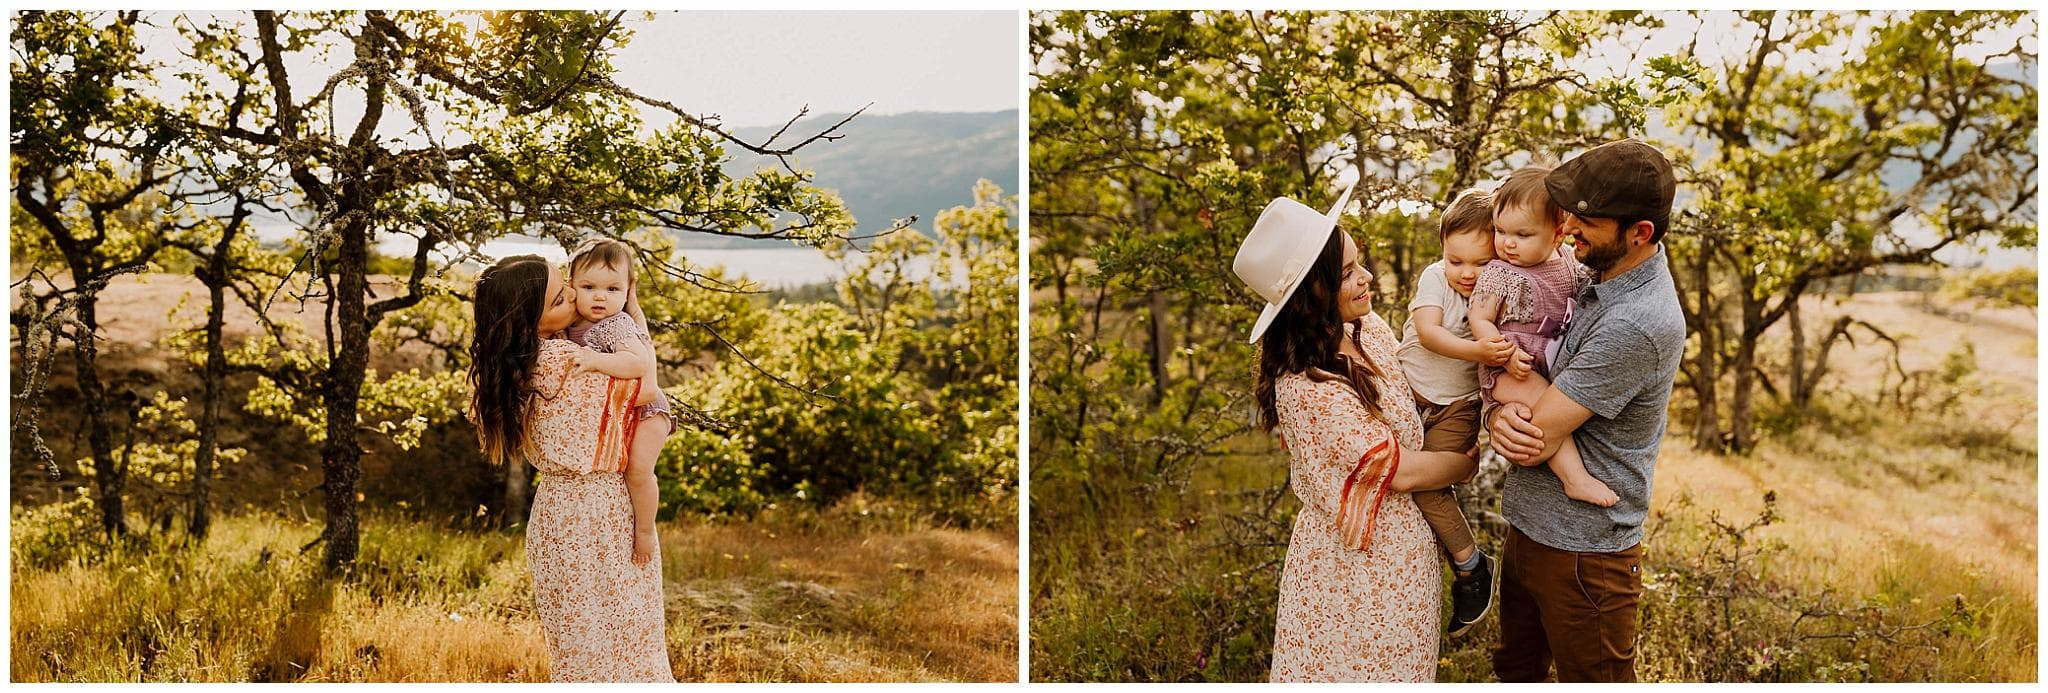 Portland Family Photographer - lifestyle family photos in the columbia river gorge